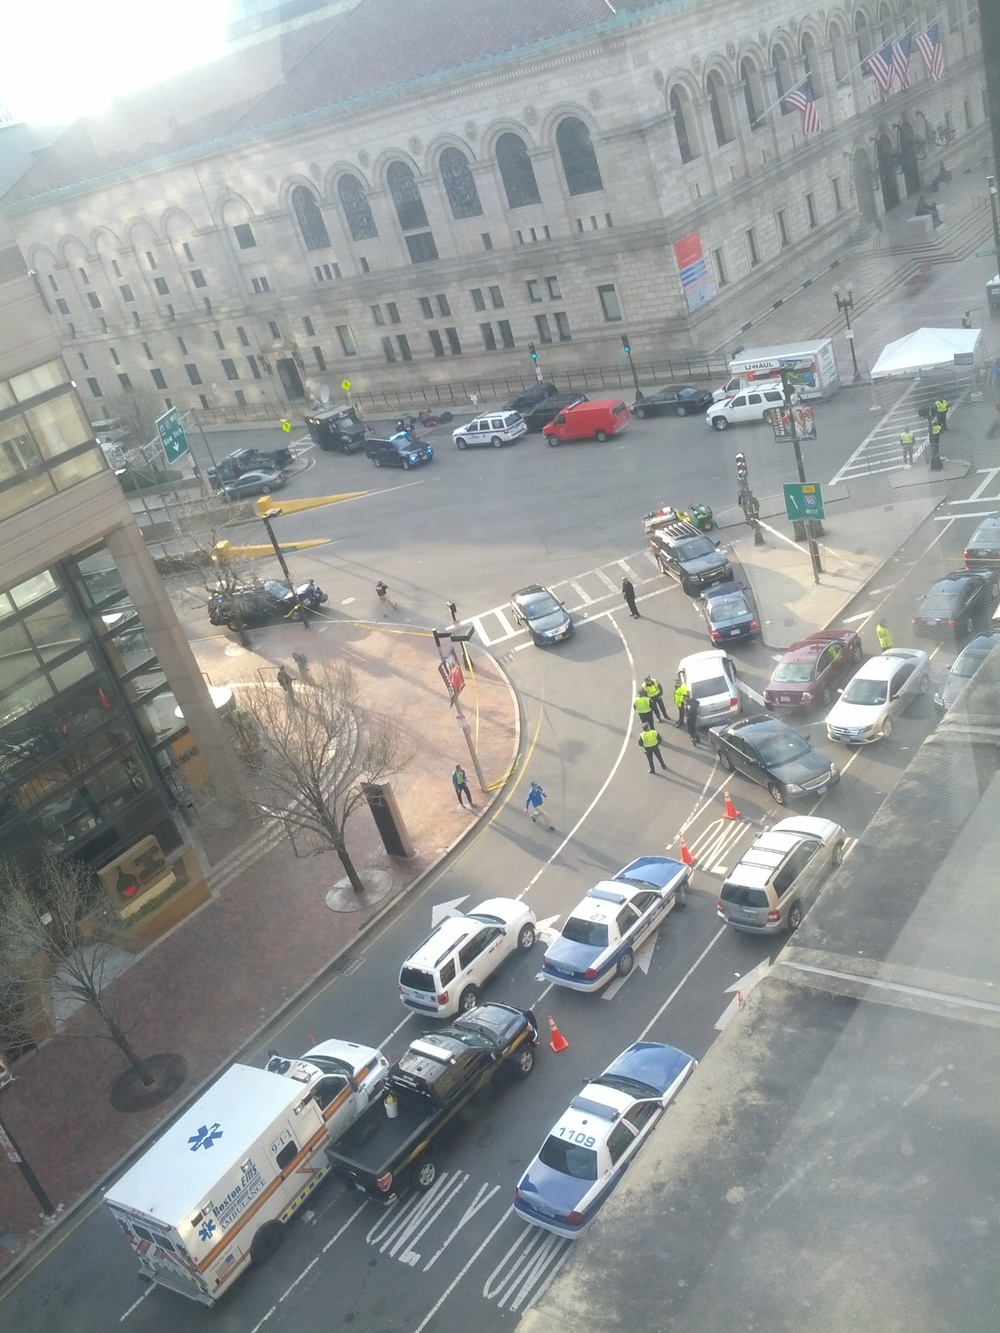 The scene from the fifth floor of the Fairmont Copley Plaza in Boston following Monday's Boston Marathon bombings. Credit: Courtesy of Kevin Goodman.